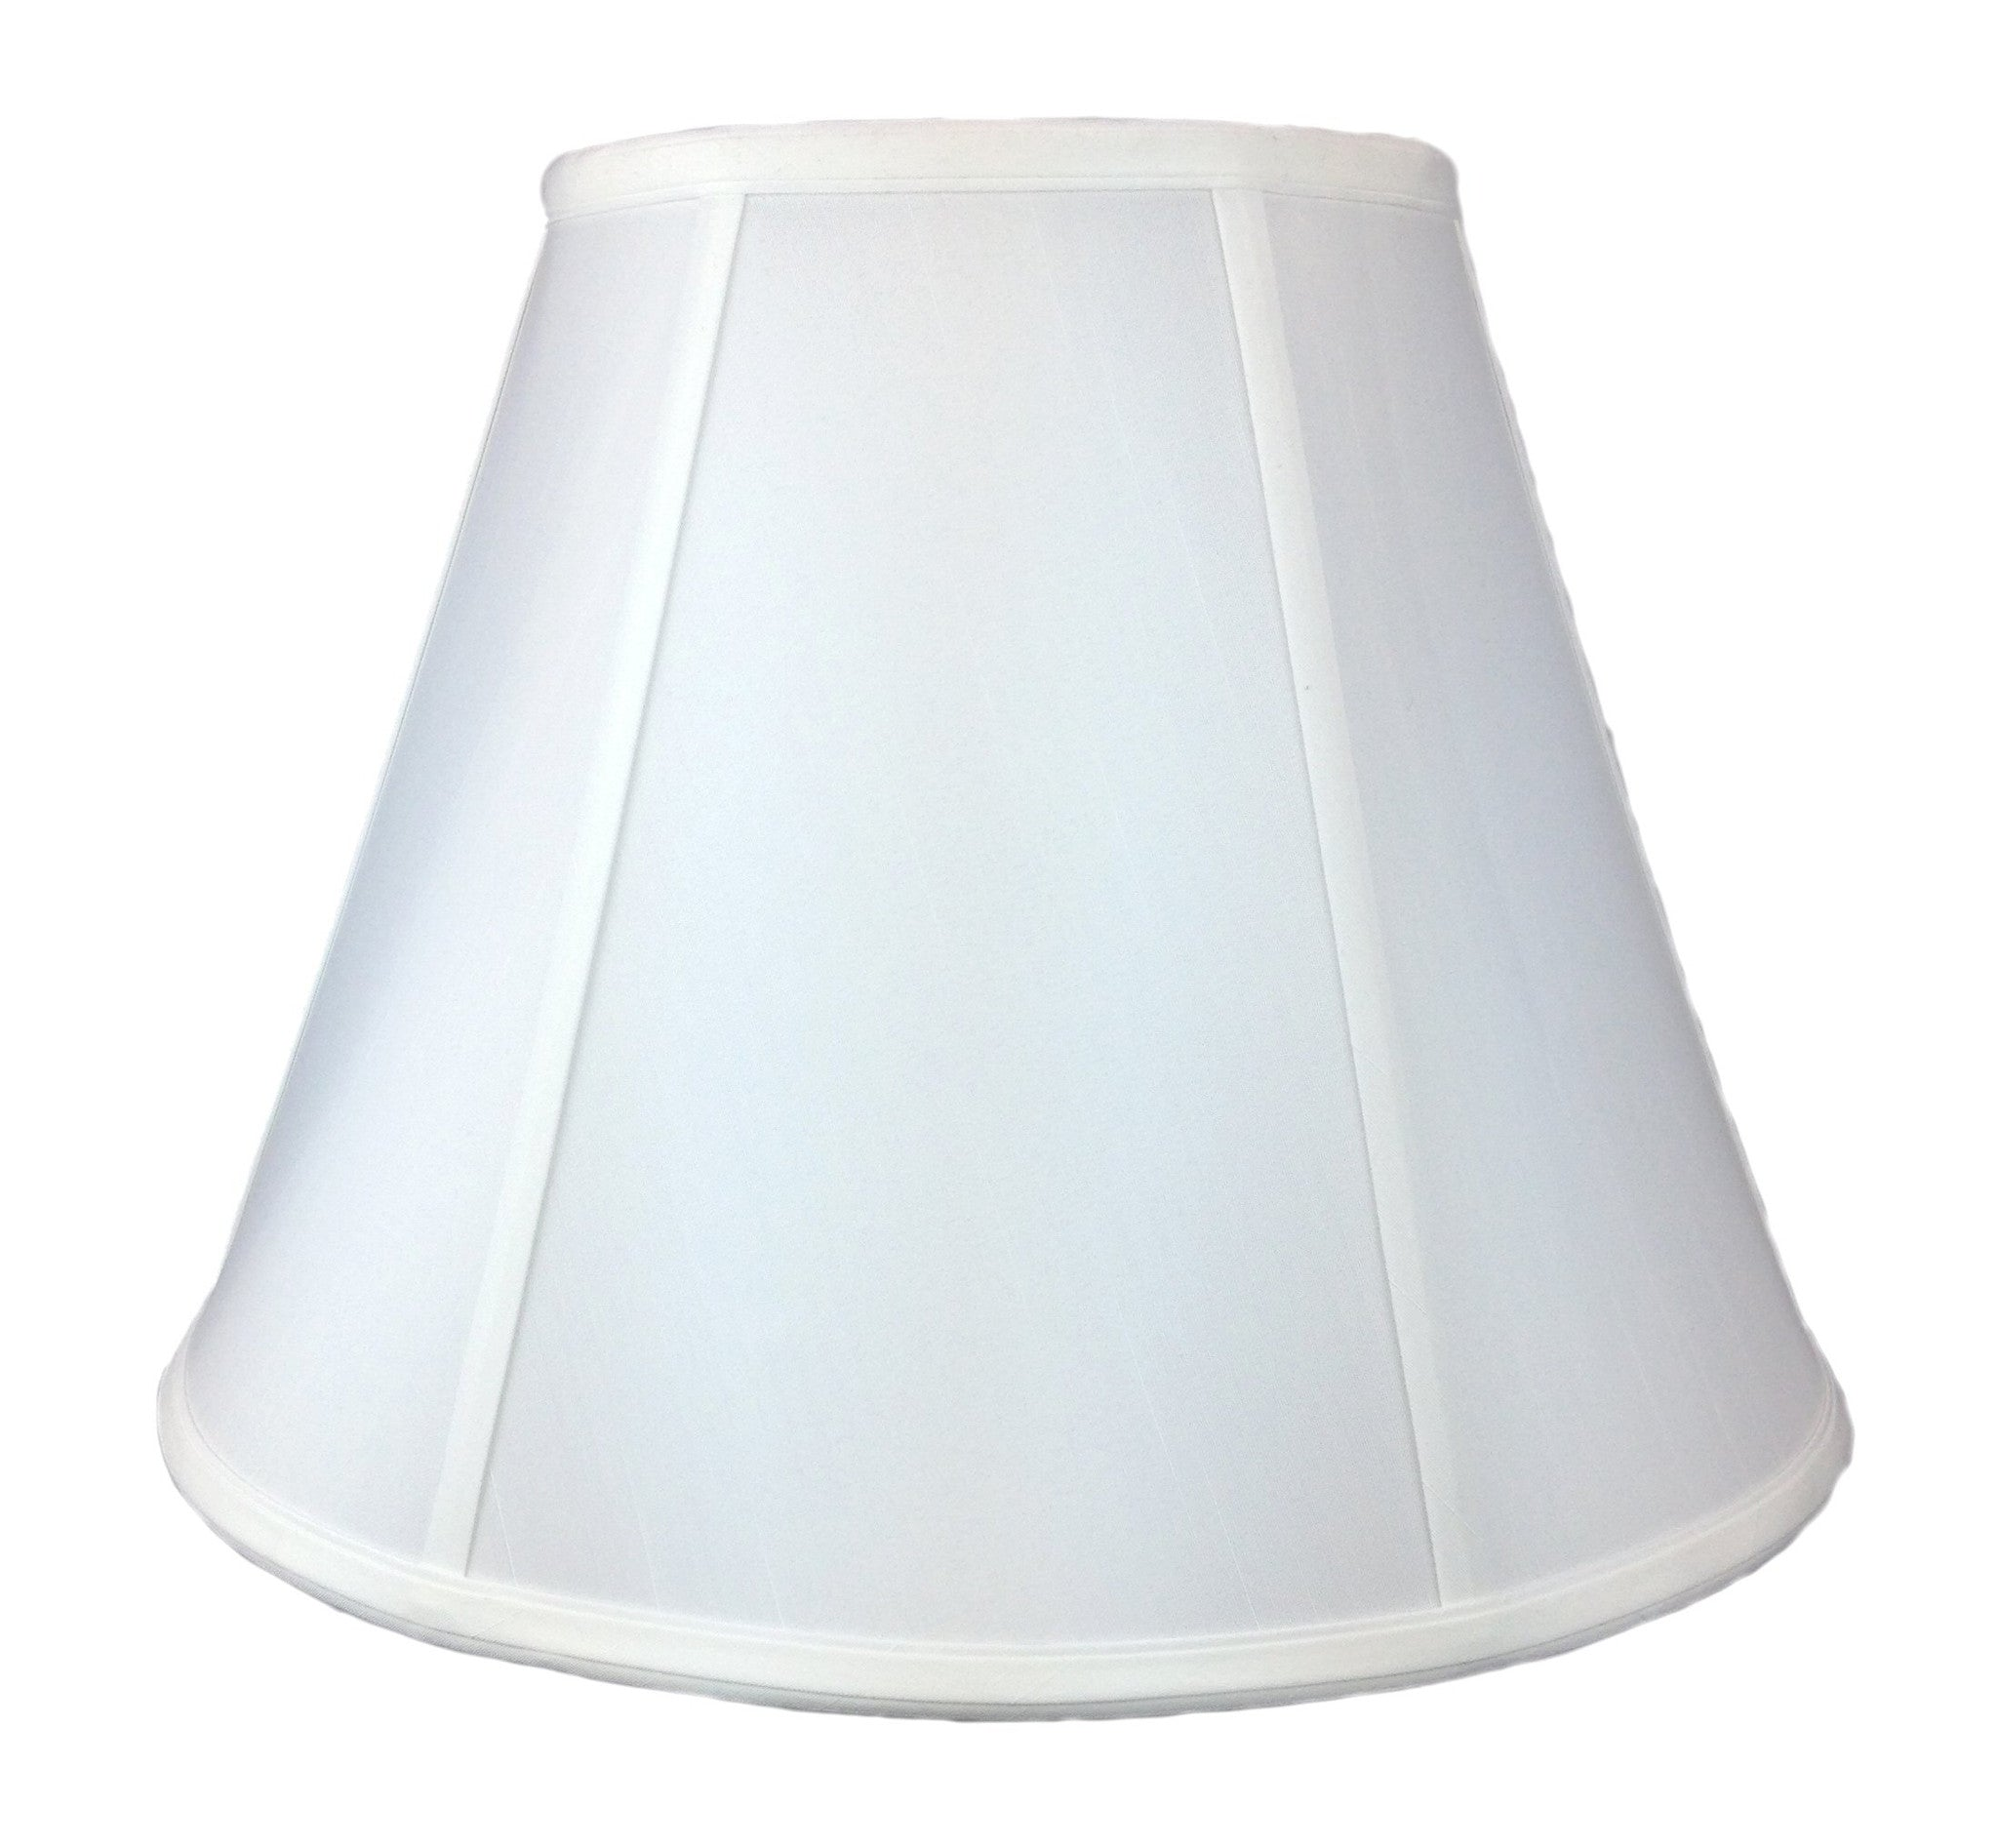 bottle using lamps pom to com fitter shade three via a about fin table smallspaces make how uno lamp